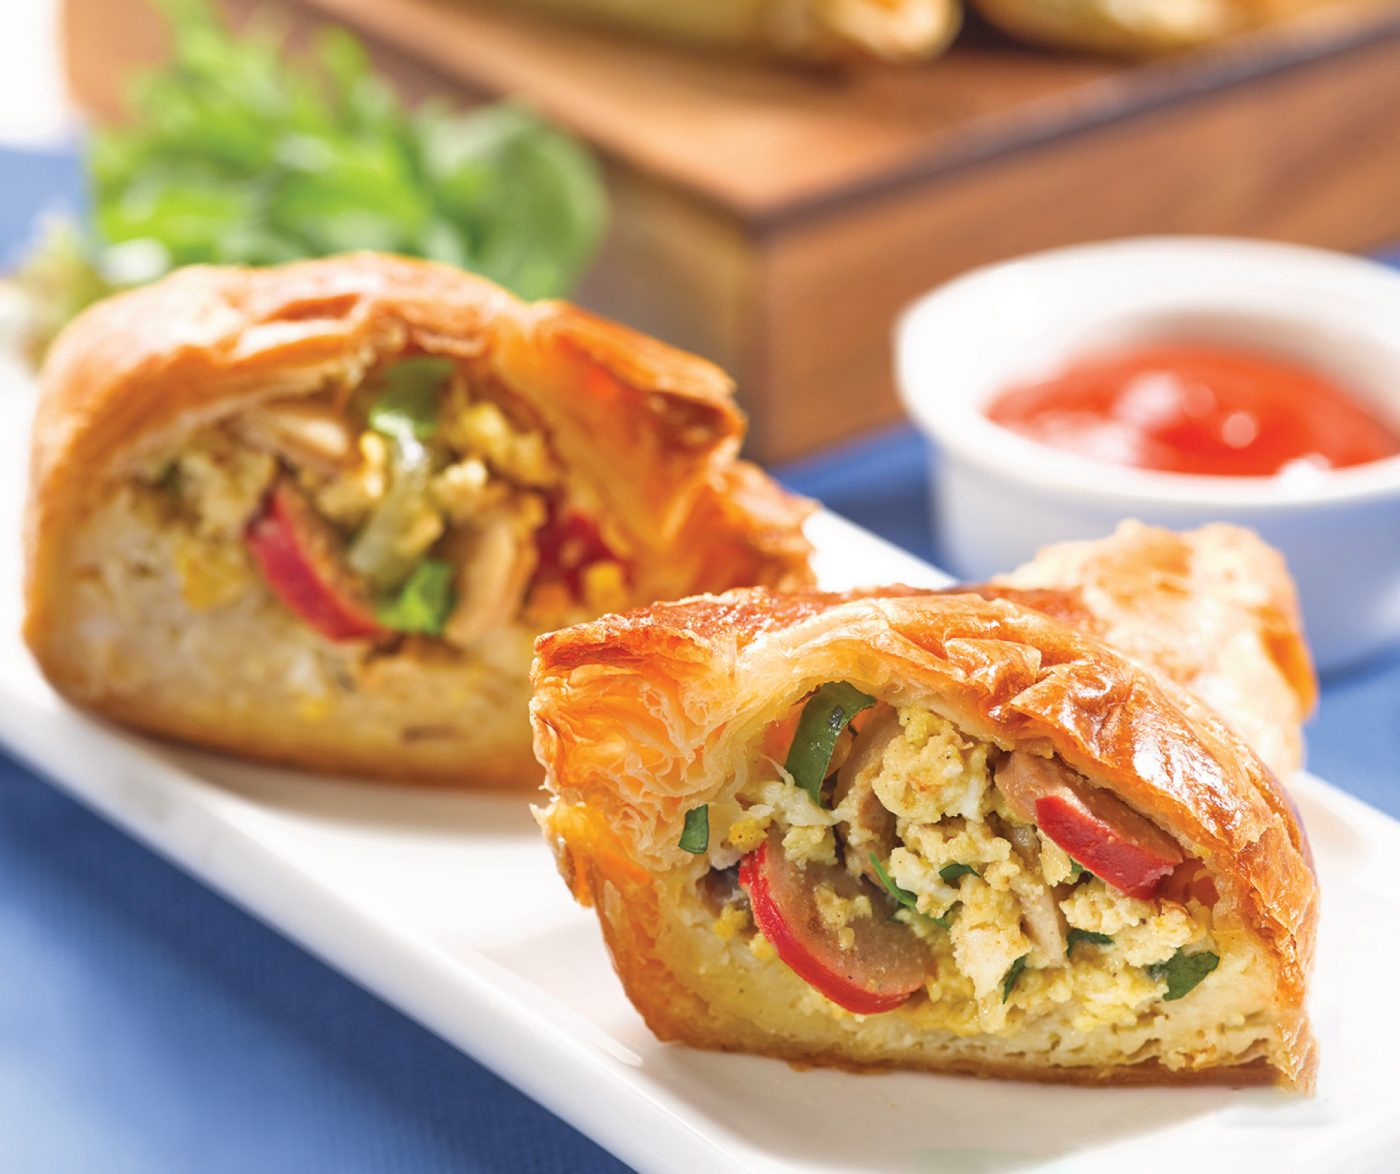 Image Sausage Egg Calzone With So Good Sausage Premium